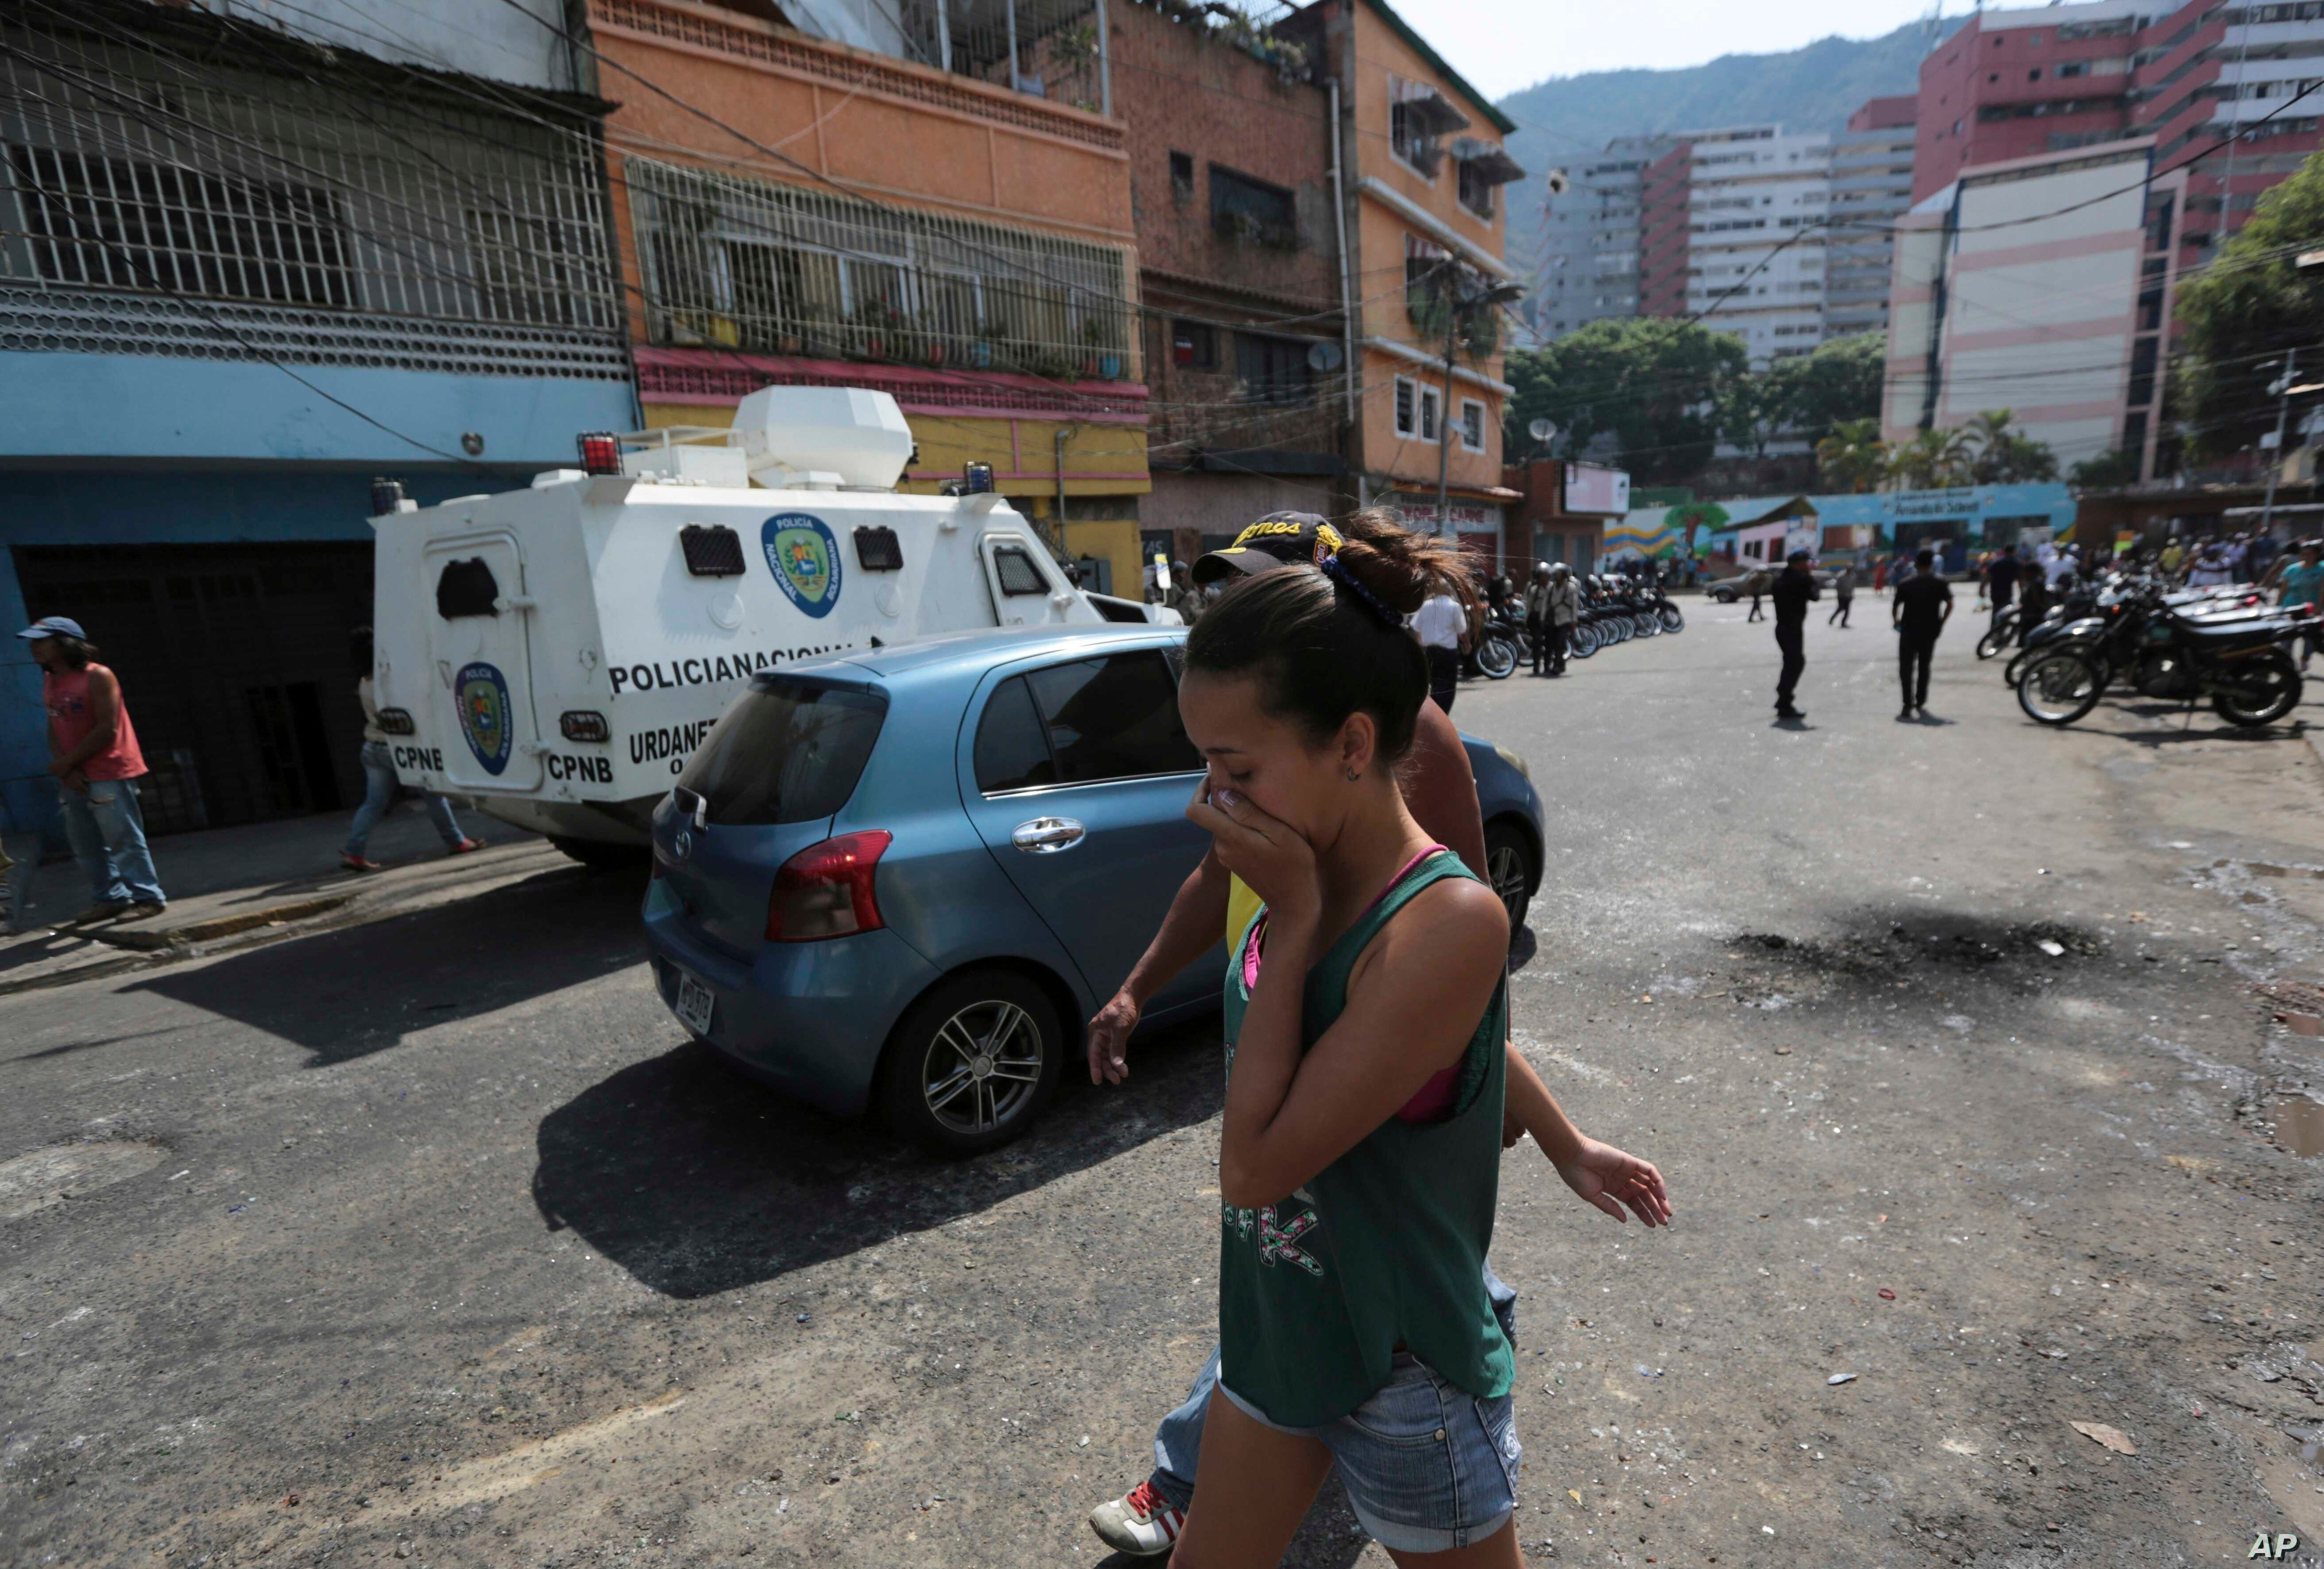 A resident covers her month from tear gas fired by Bolivarian National Police outside of a grocery and liquor store to disperse looters during a protest in Caracas, Venezuela, April 12, 2017.